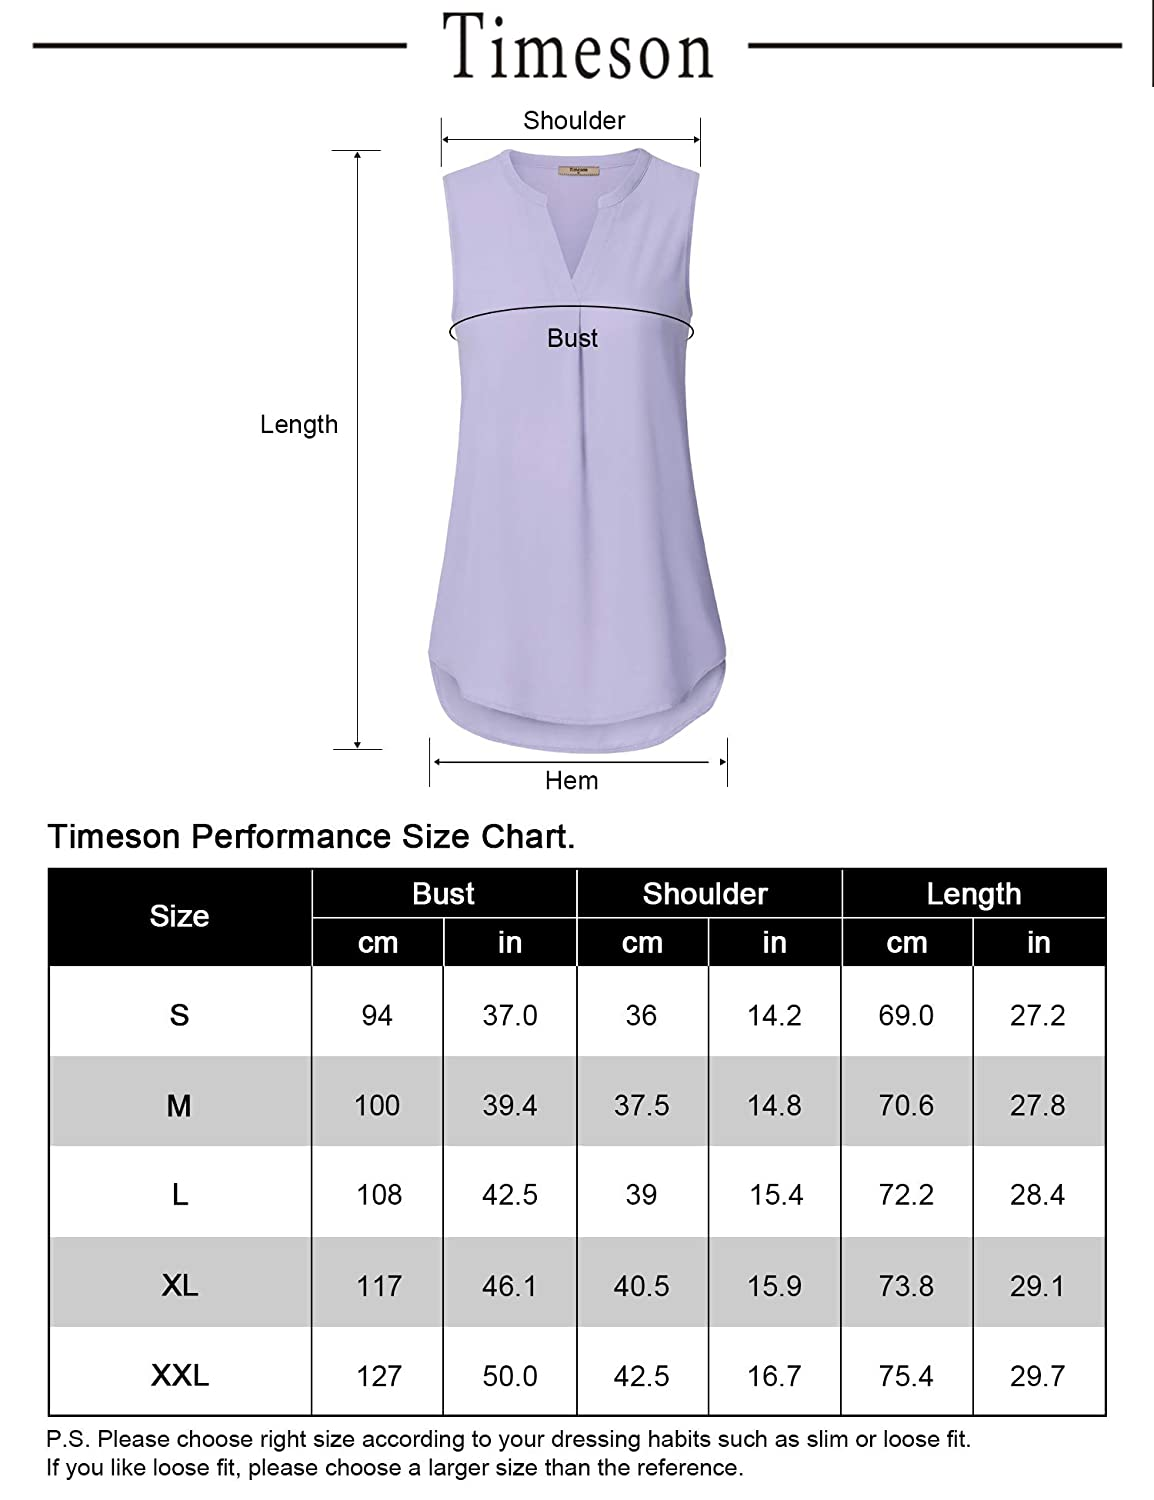 Timeson Women Casual Chiffon V Neck Cuffed Sleeve Blouse Tops